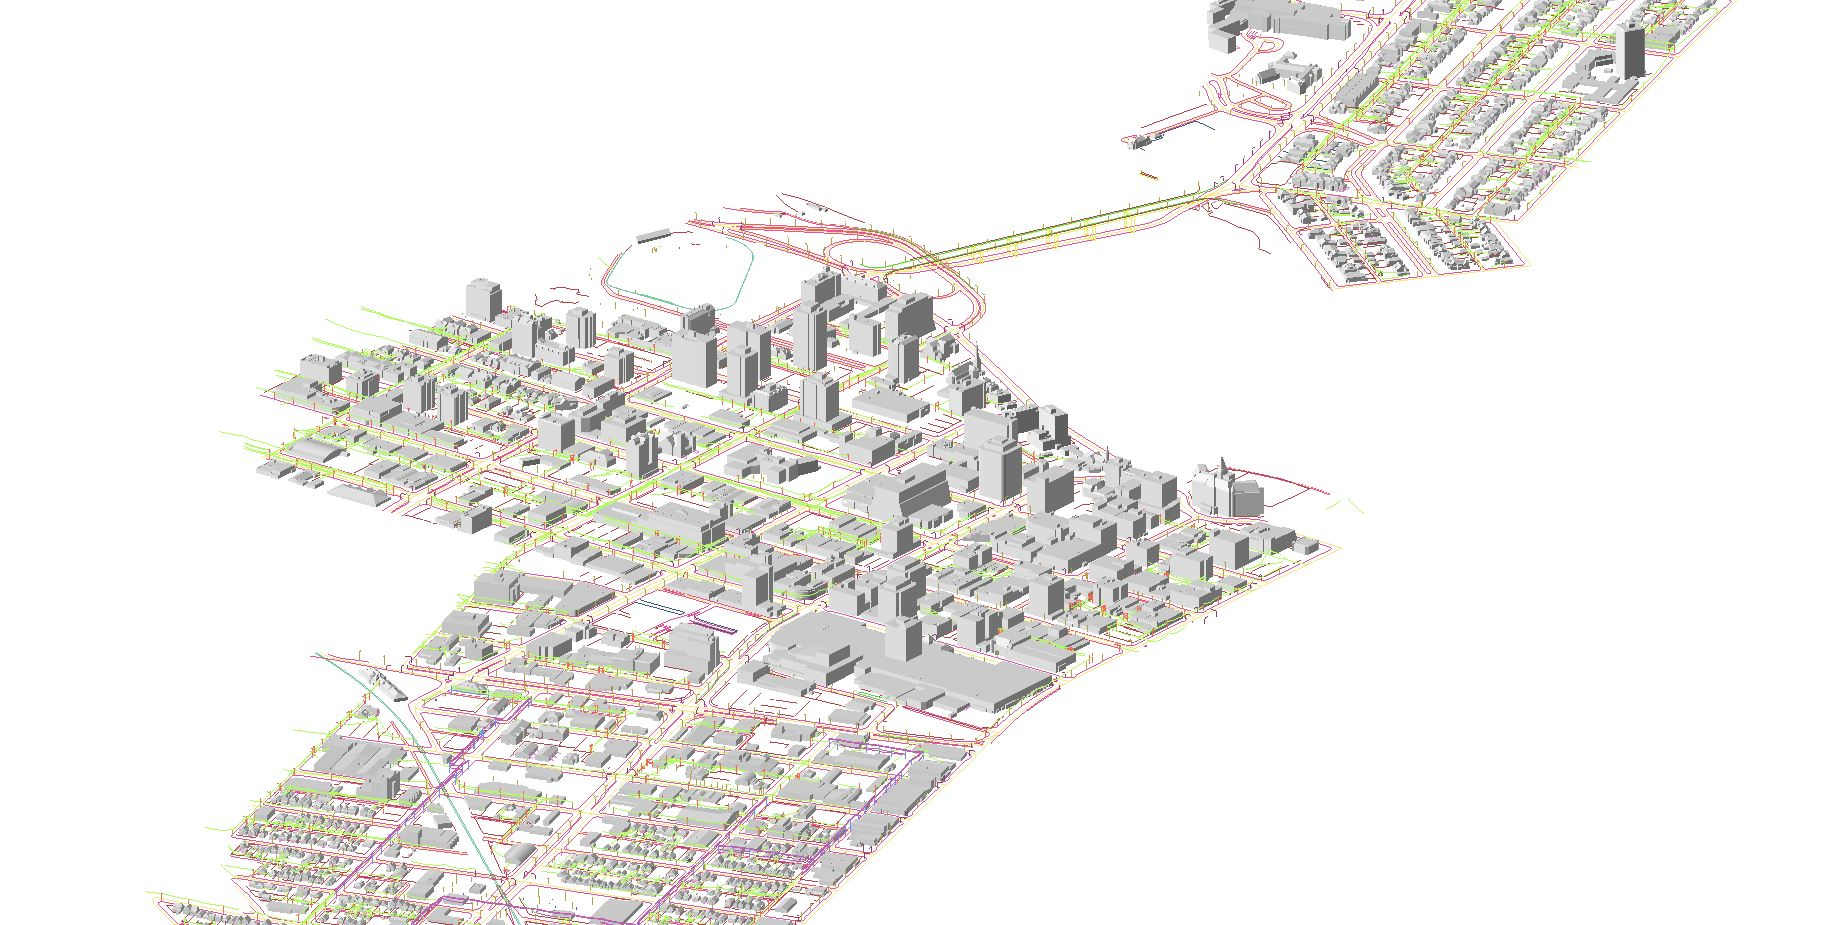 Urban mapping from LiDAR